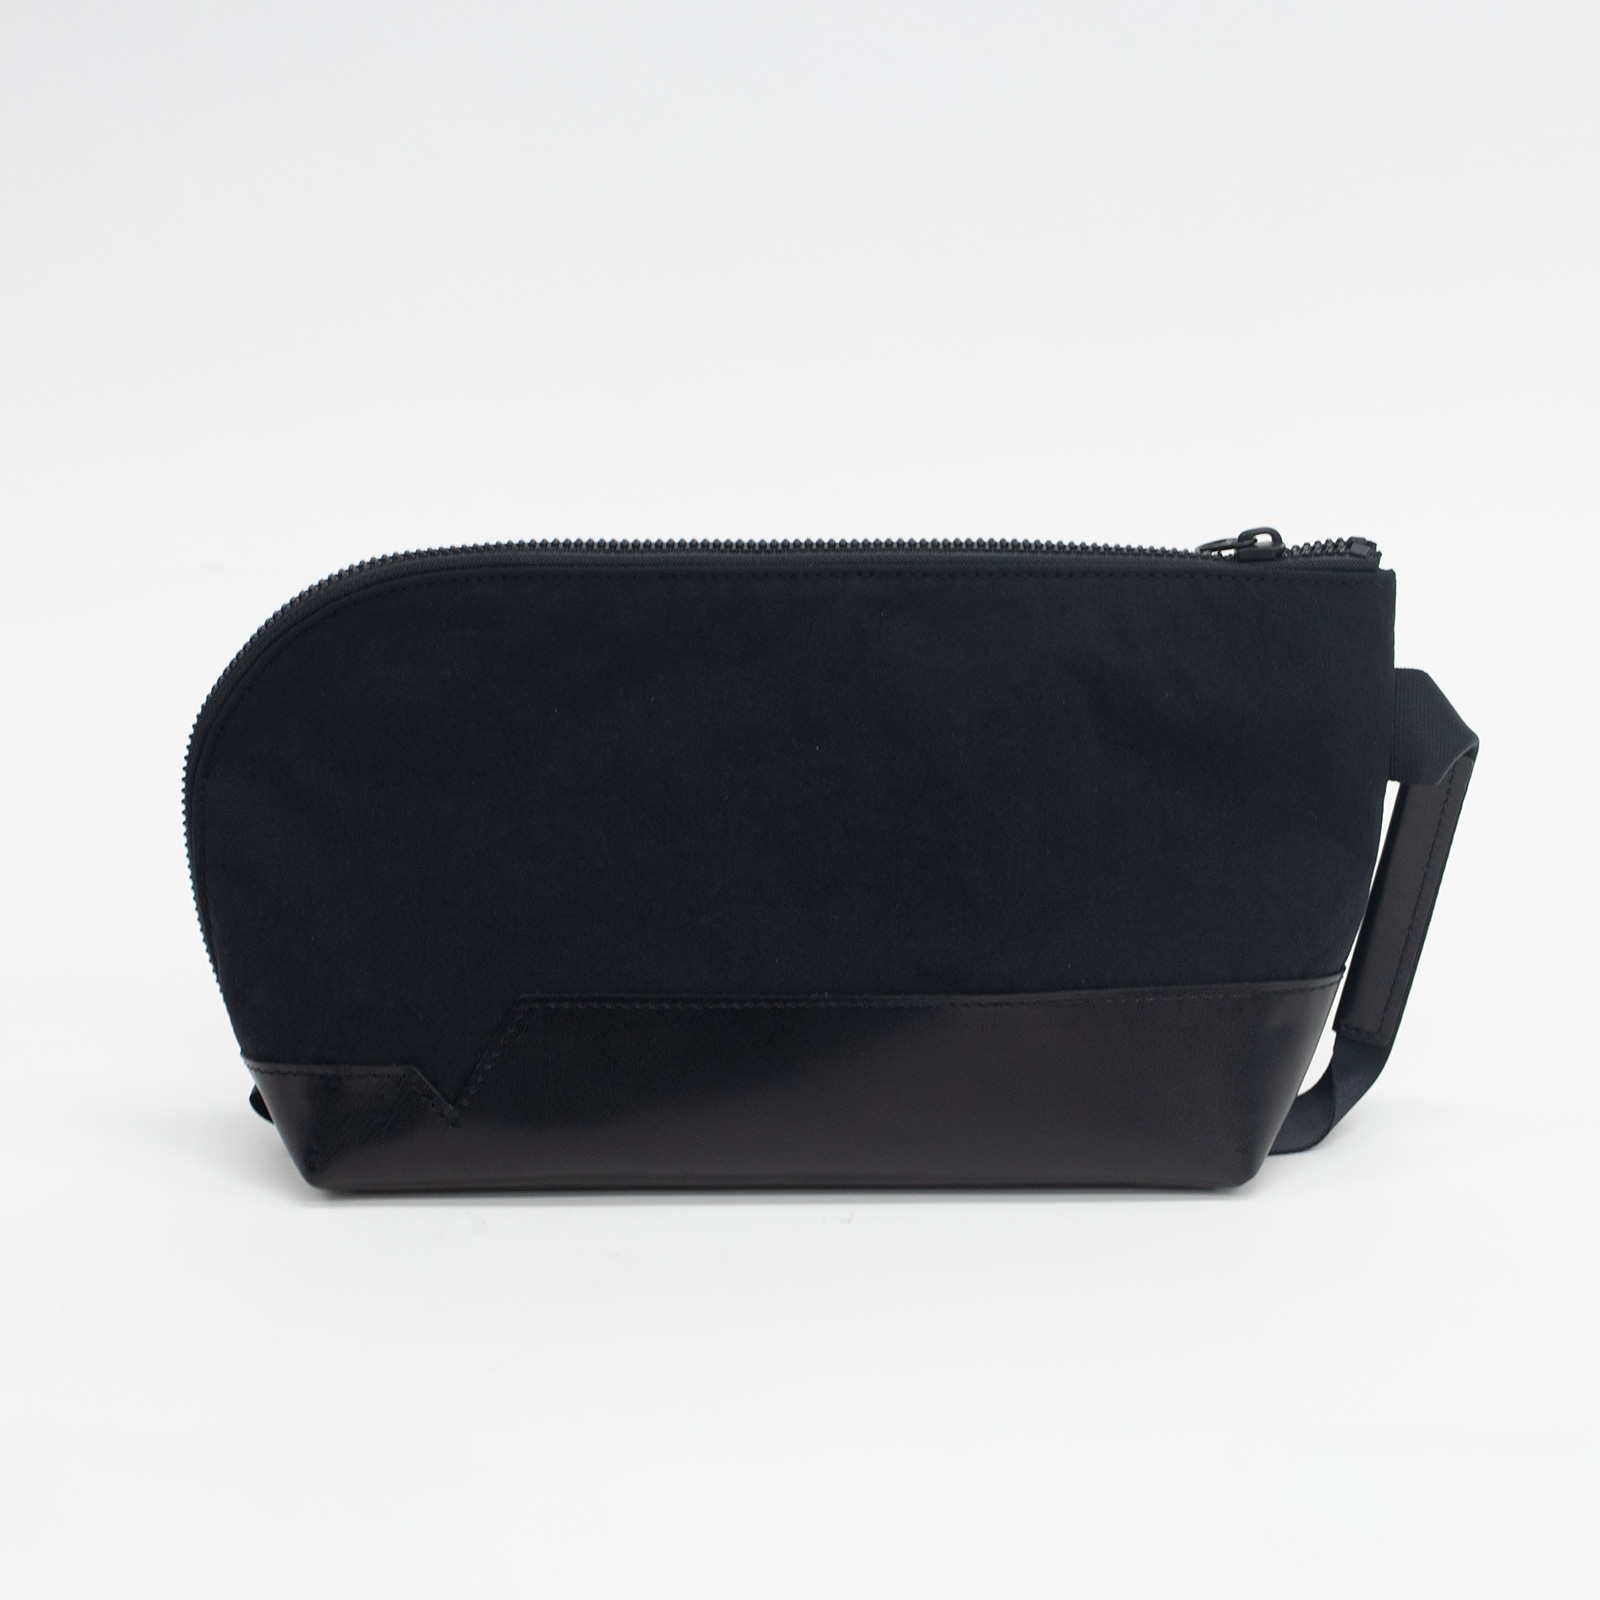 Root <UNISEX>Pouch(コンブナイロンポーチ・クラッチバッグ) カシャロット